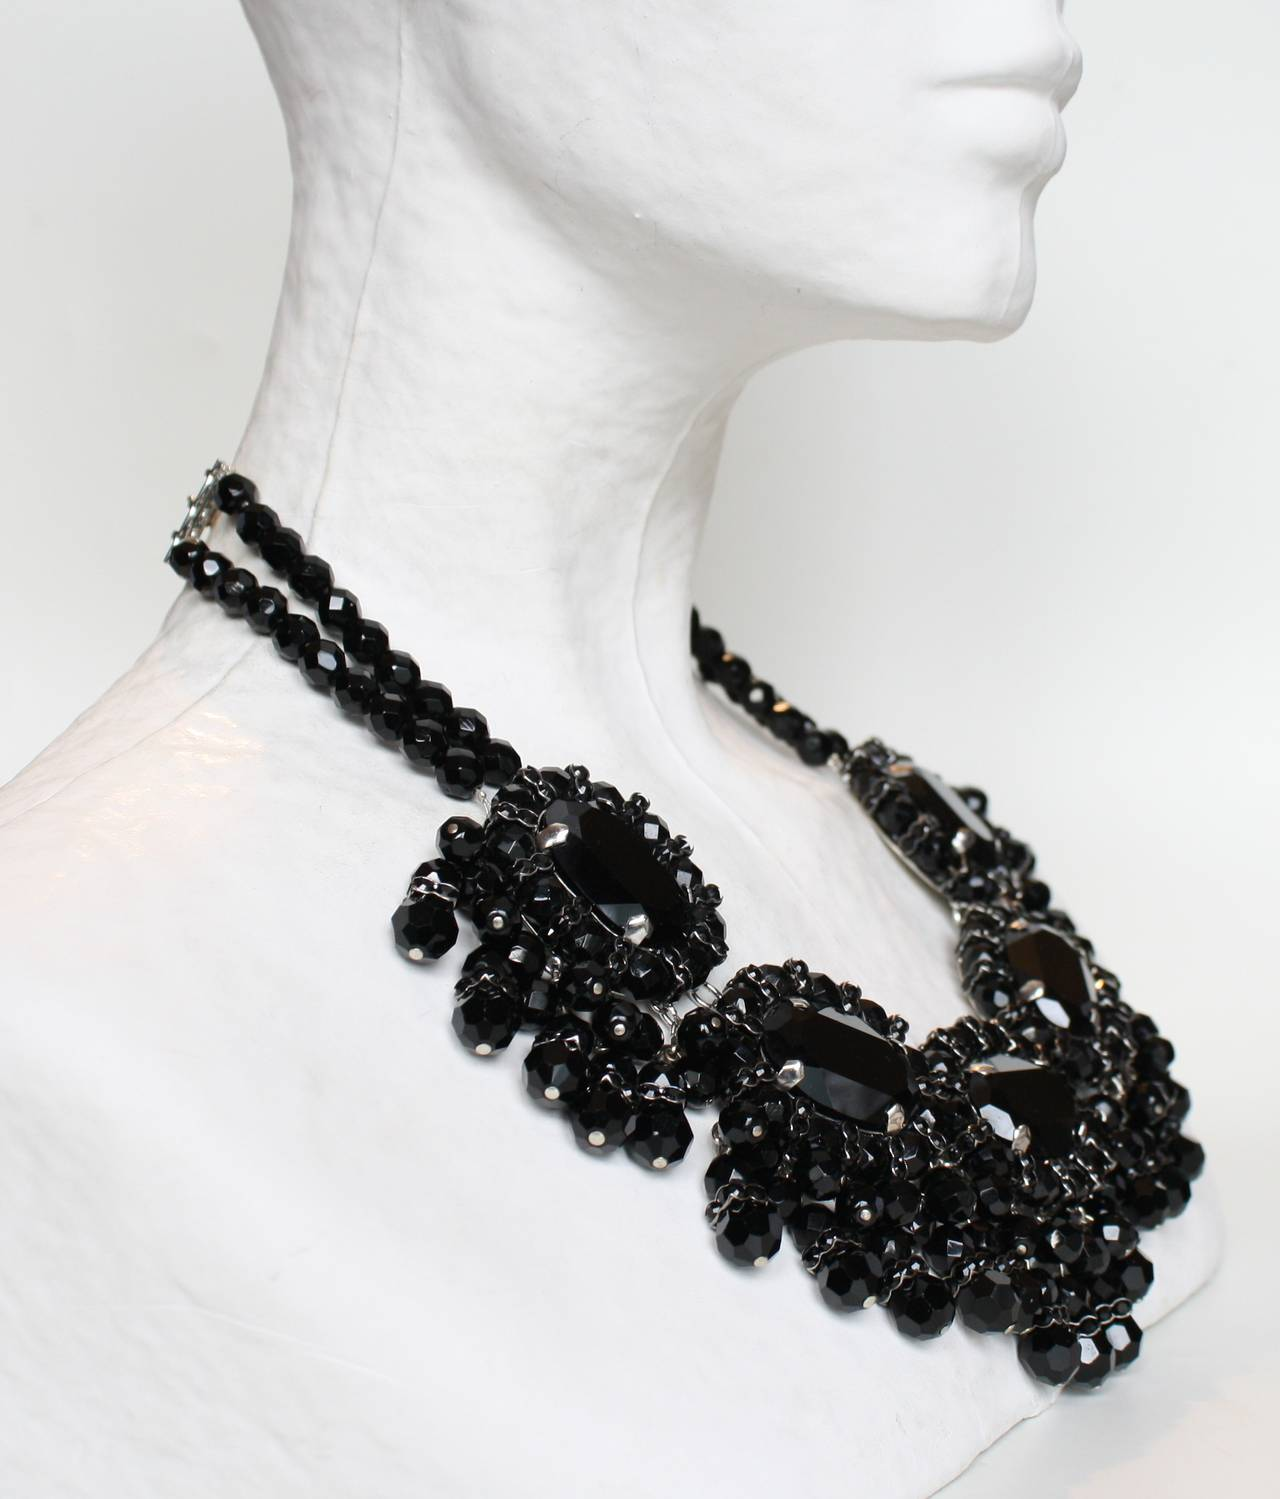 Handmade in her Parisian atelier, this black fringe necklace from designer Francoise Montague is magnificent. Made with Swarovski crystals, and glass beads. 